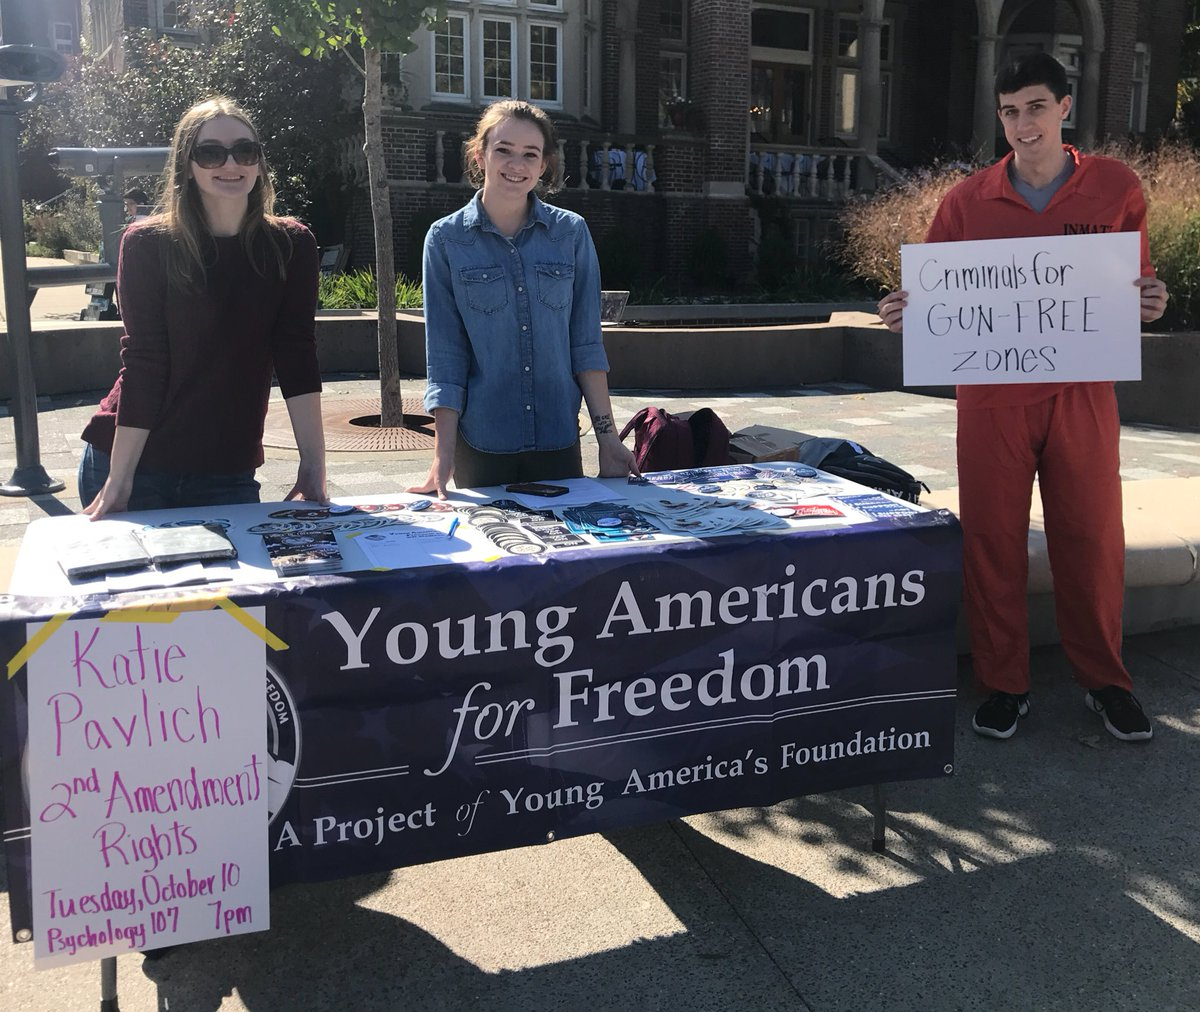 #RT @yaf: RT @itsSpencerBrown: This is the most #totalYAFmove I've seen in awhile. Well done, @WisconsinYAF. #Crim… <br>http://pic.twitter.com/Y0VZKOMsjx